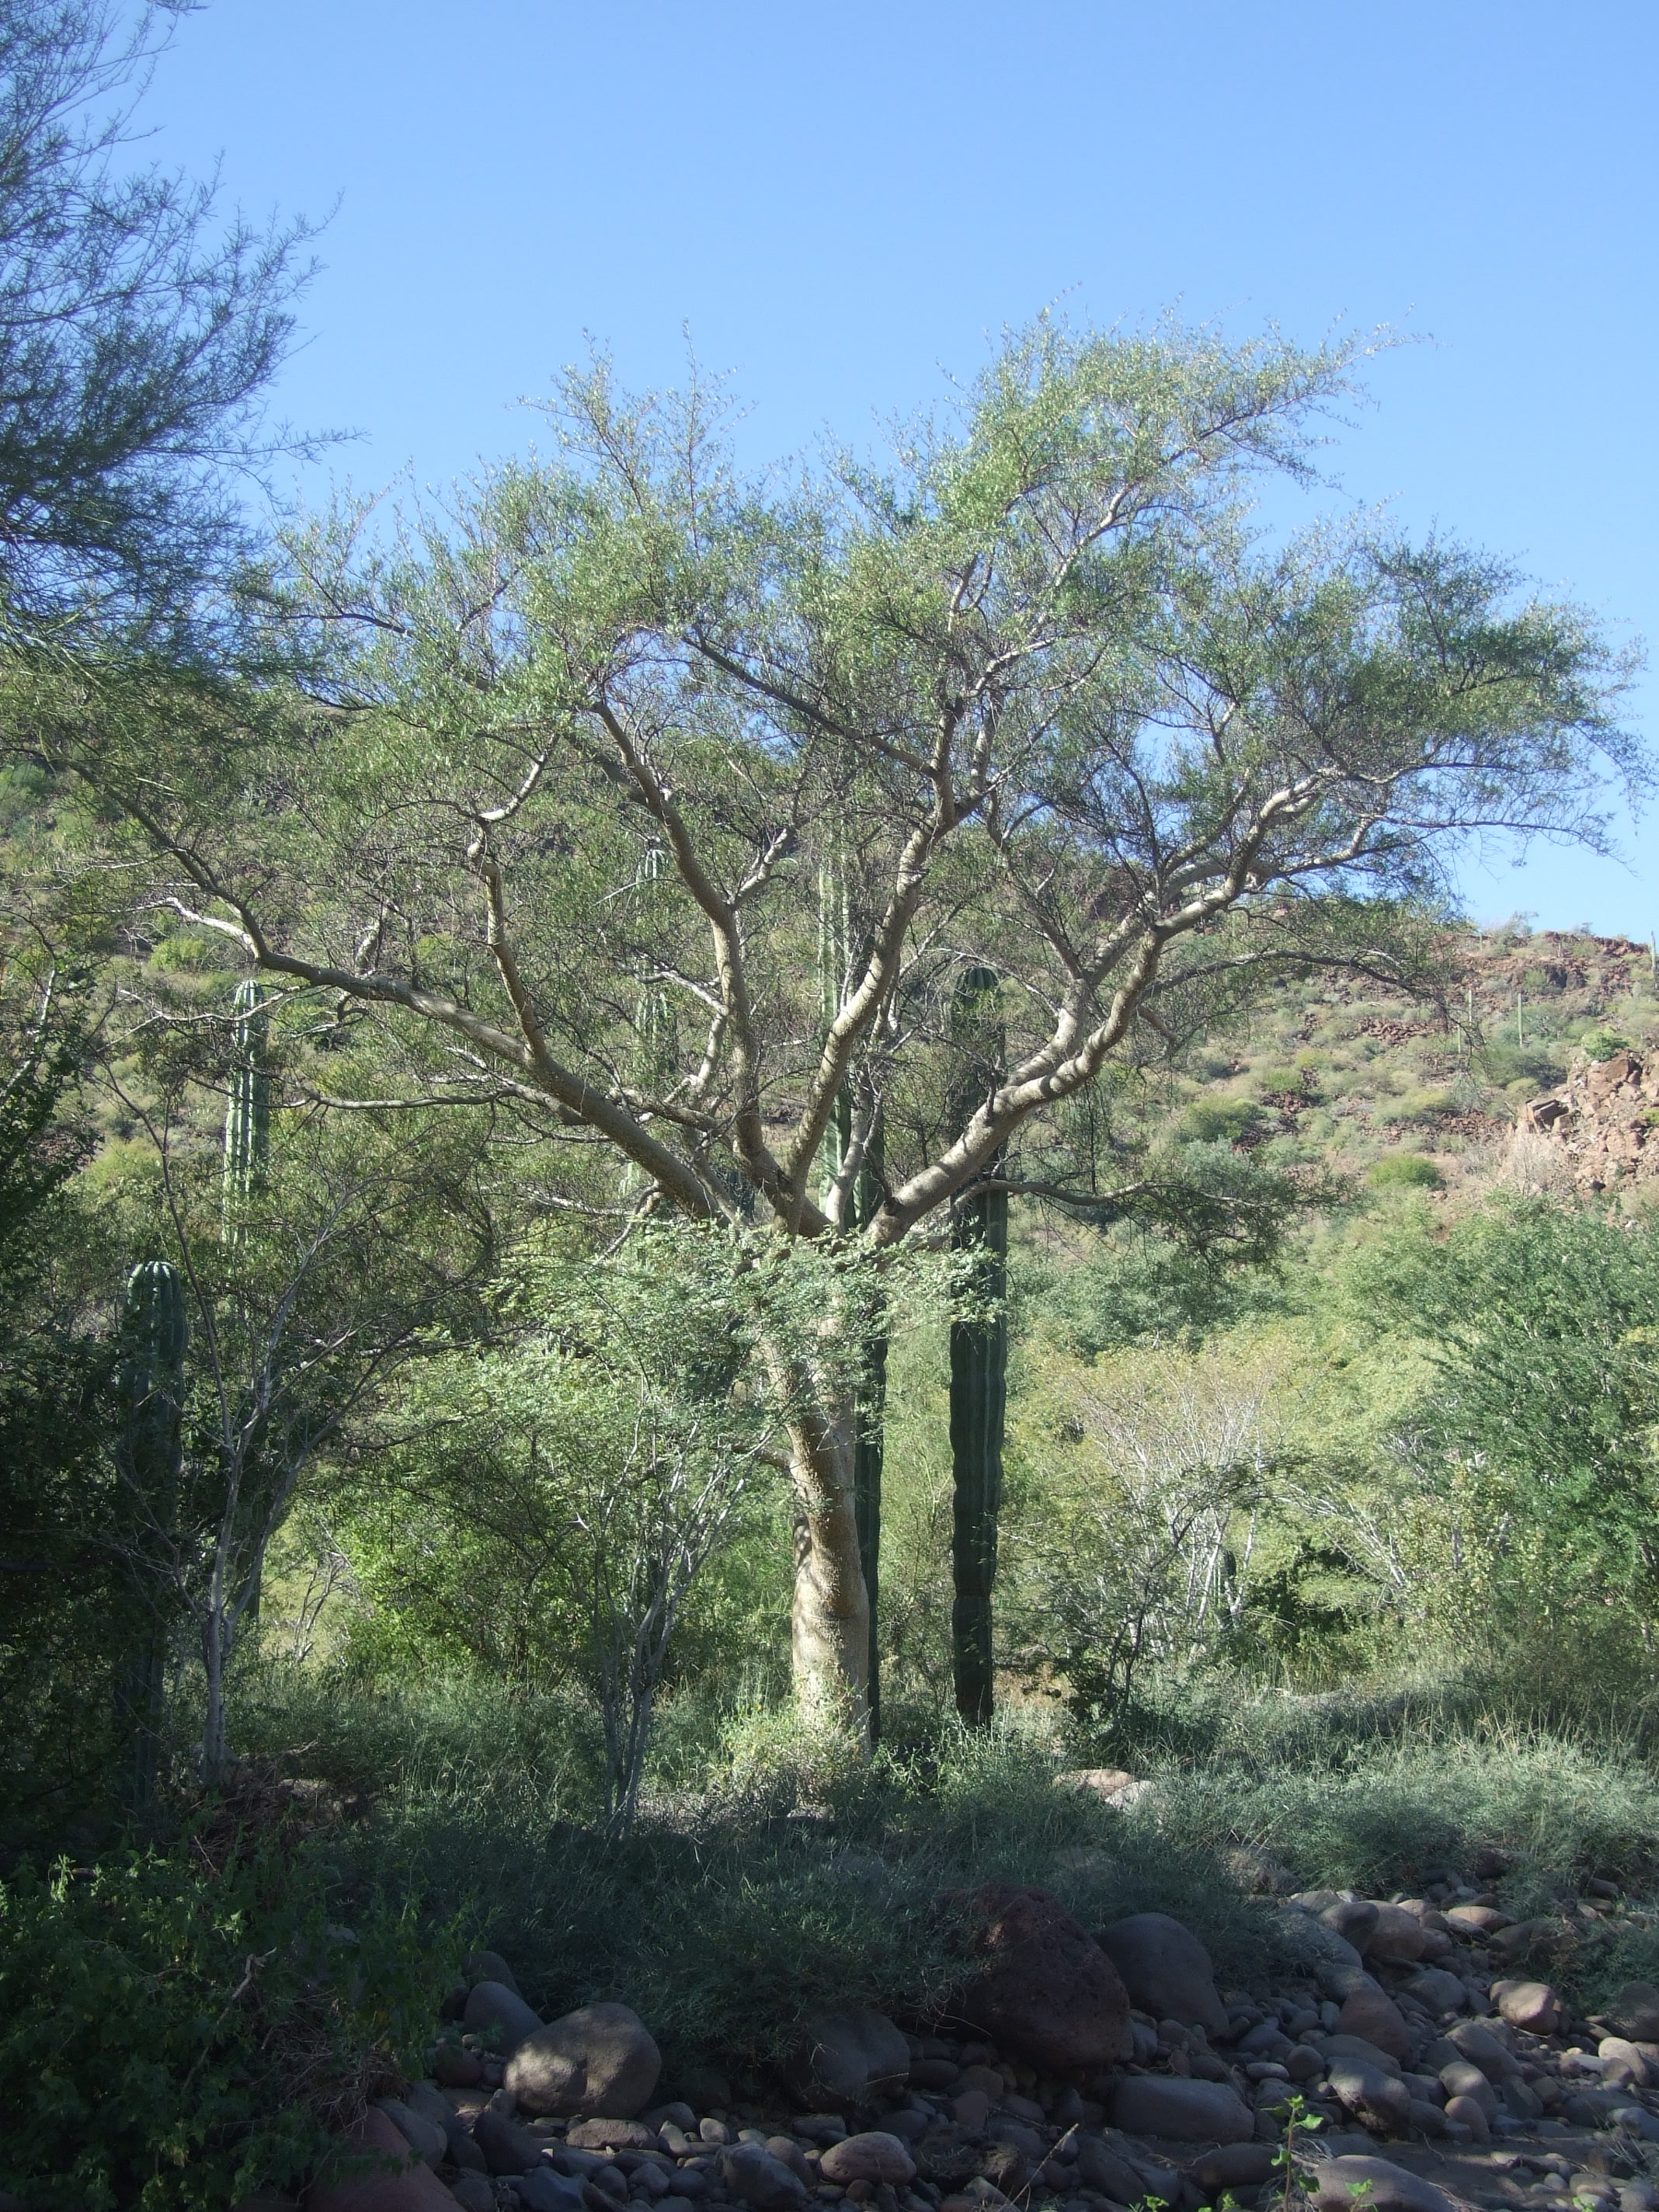 bursera-microphylla-in-arroyo.jpg